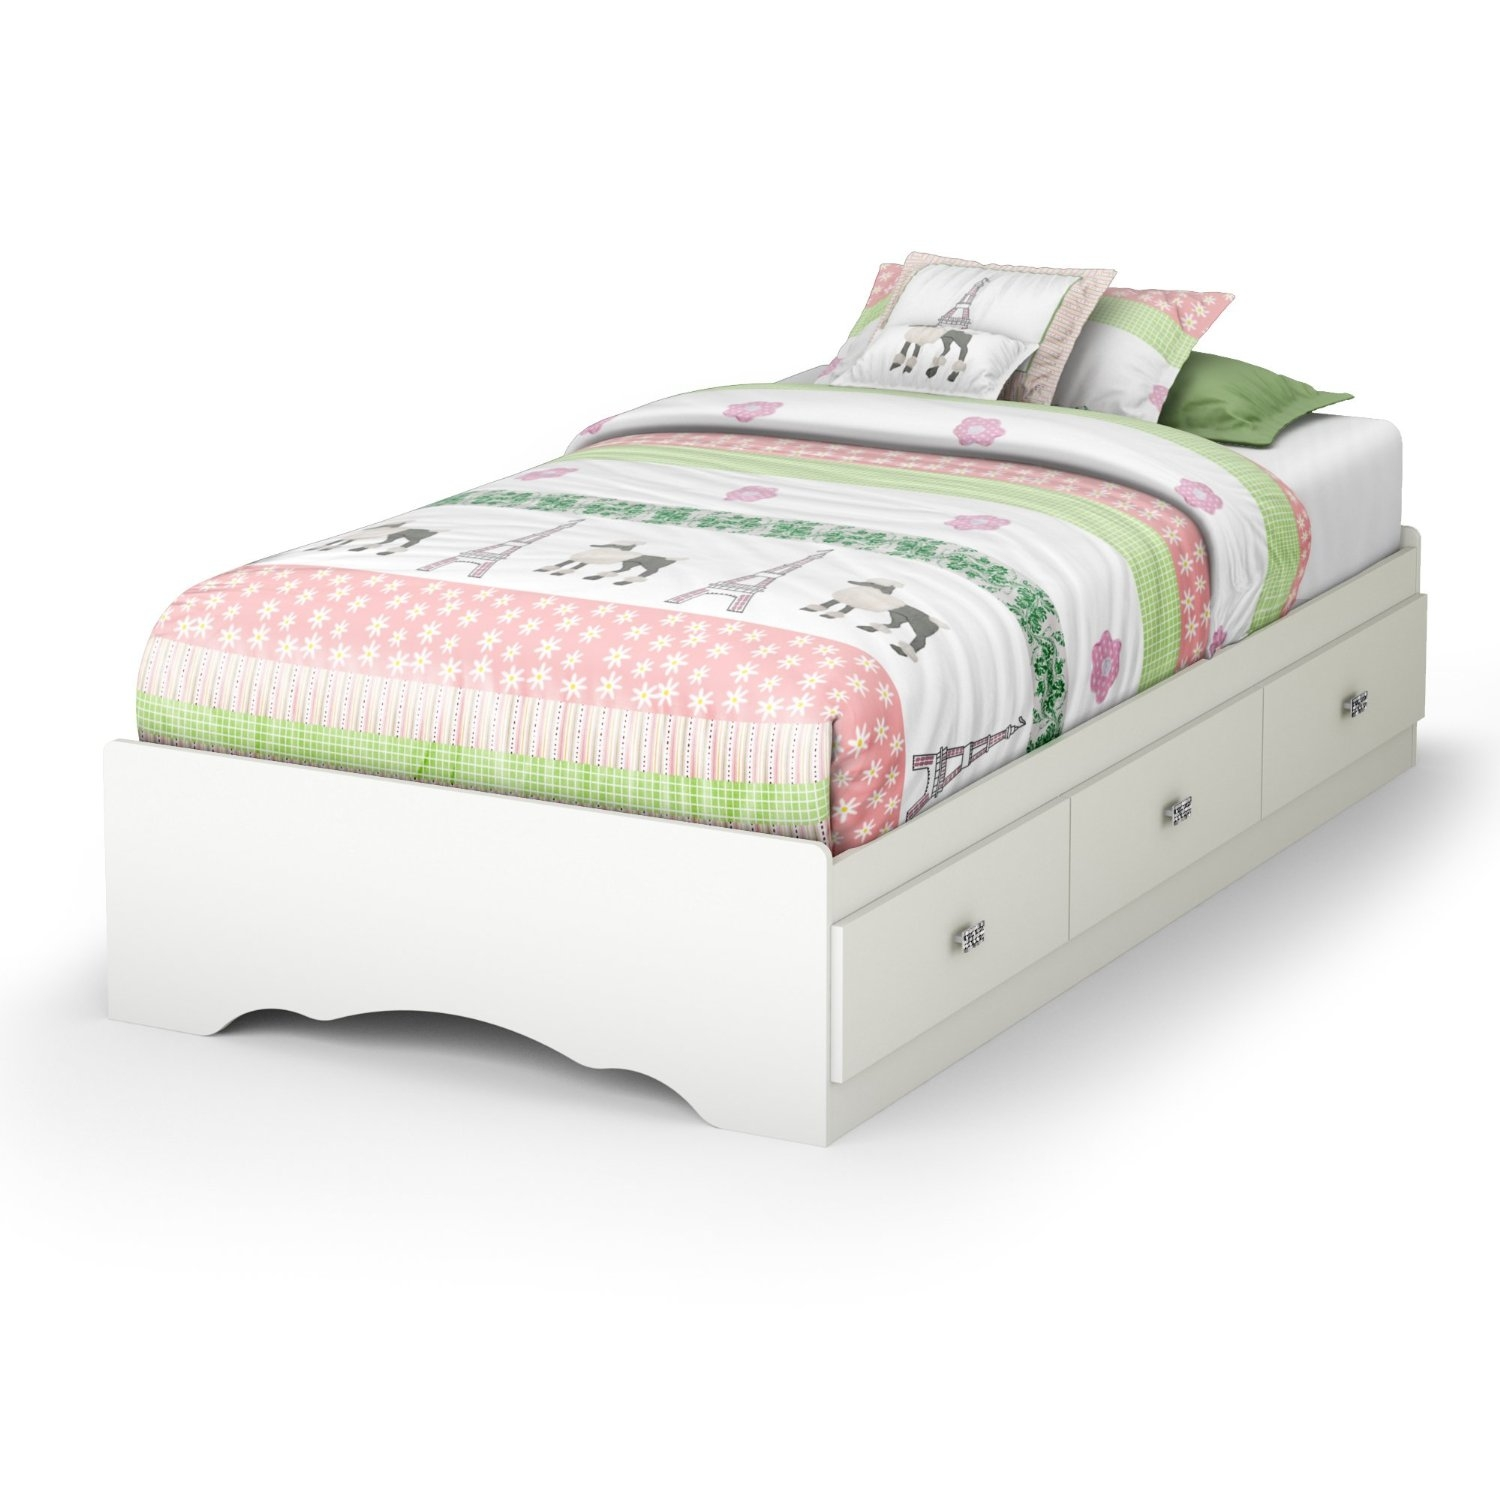 Picture of: Twin Size White Platform Bed Frame With 3 Storage Drawers Fastfurnishings Com